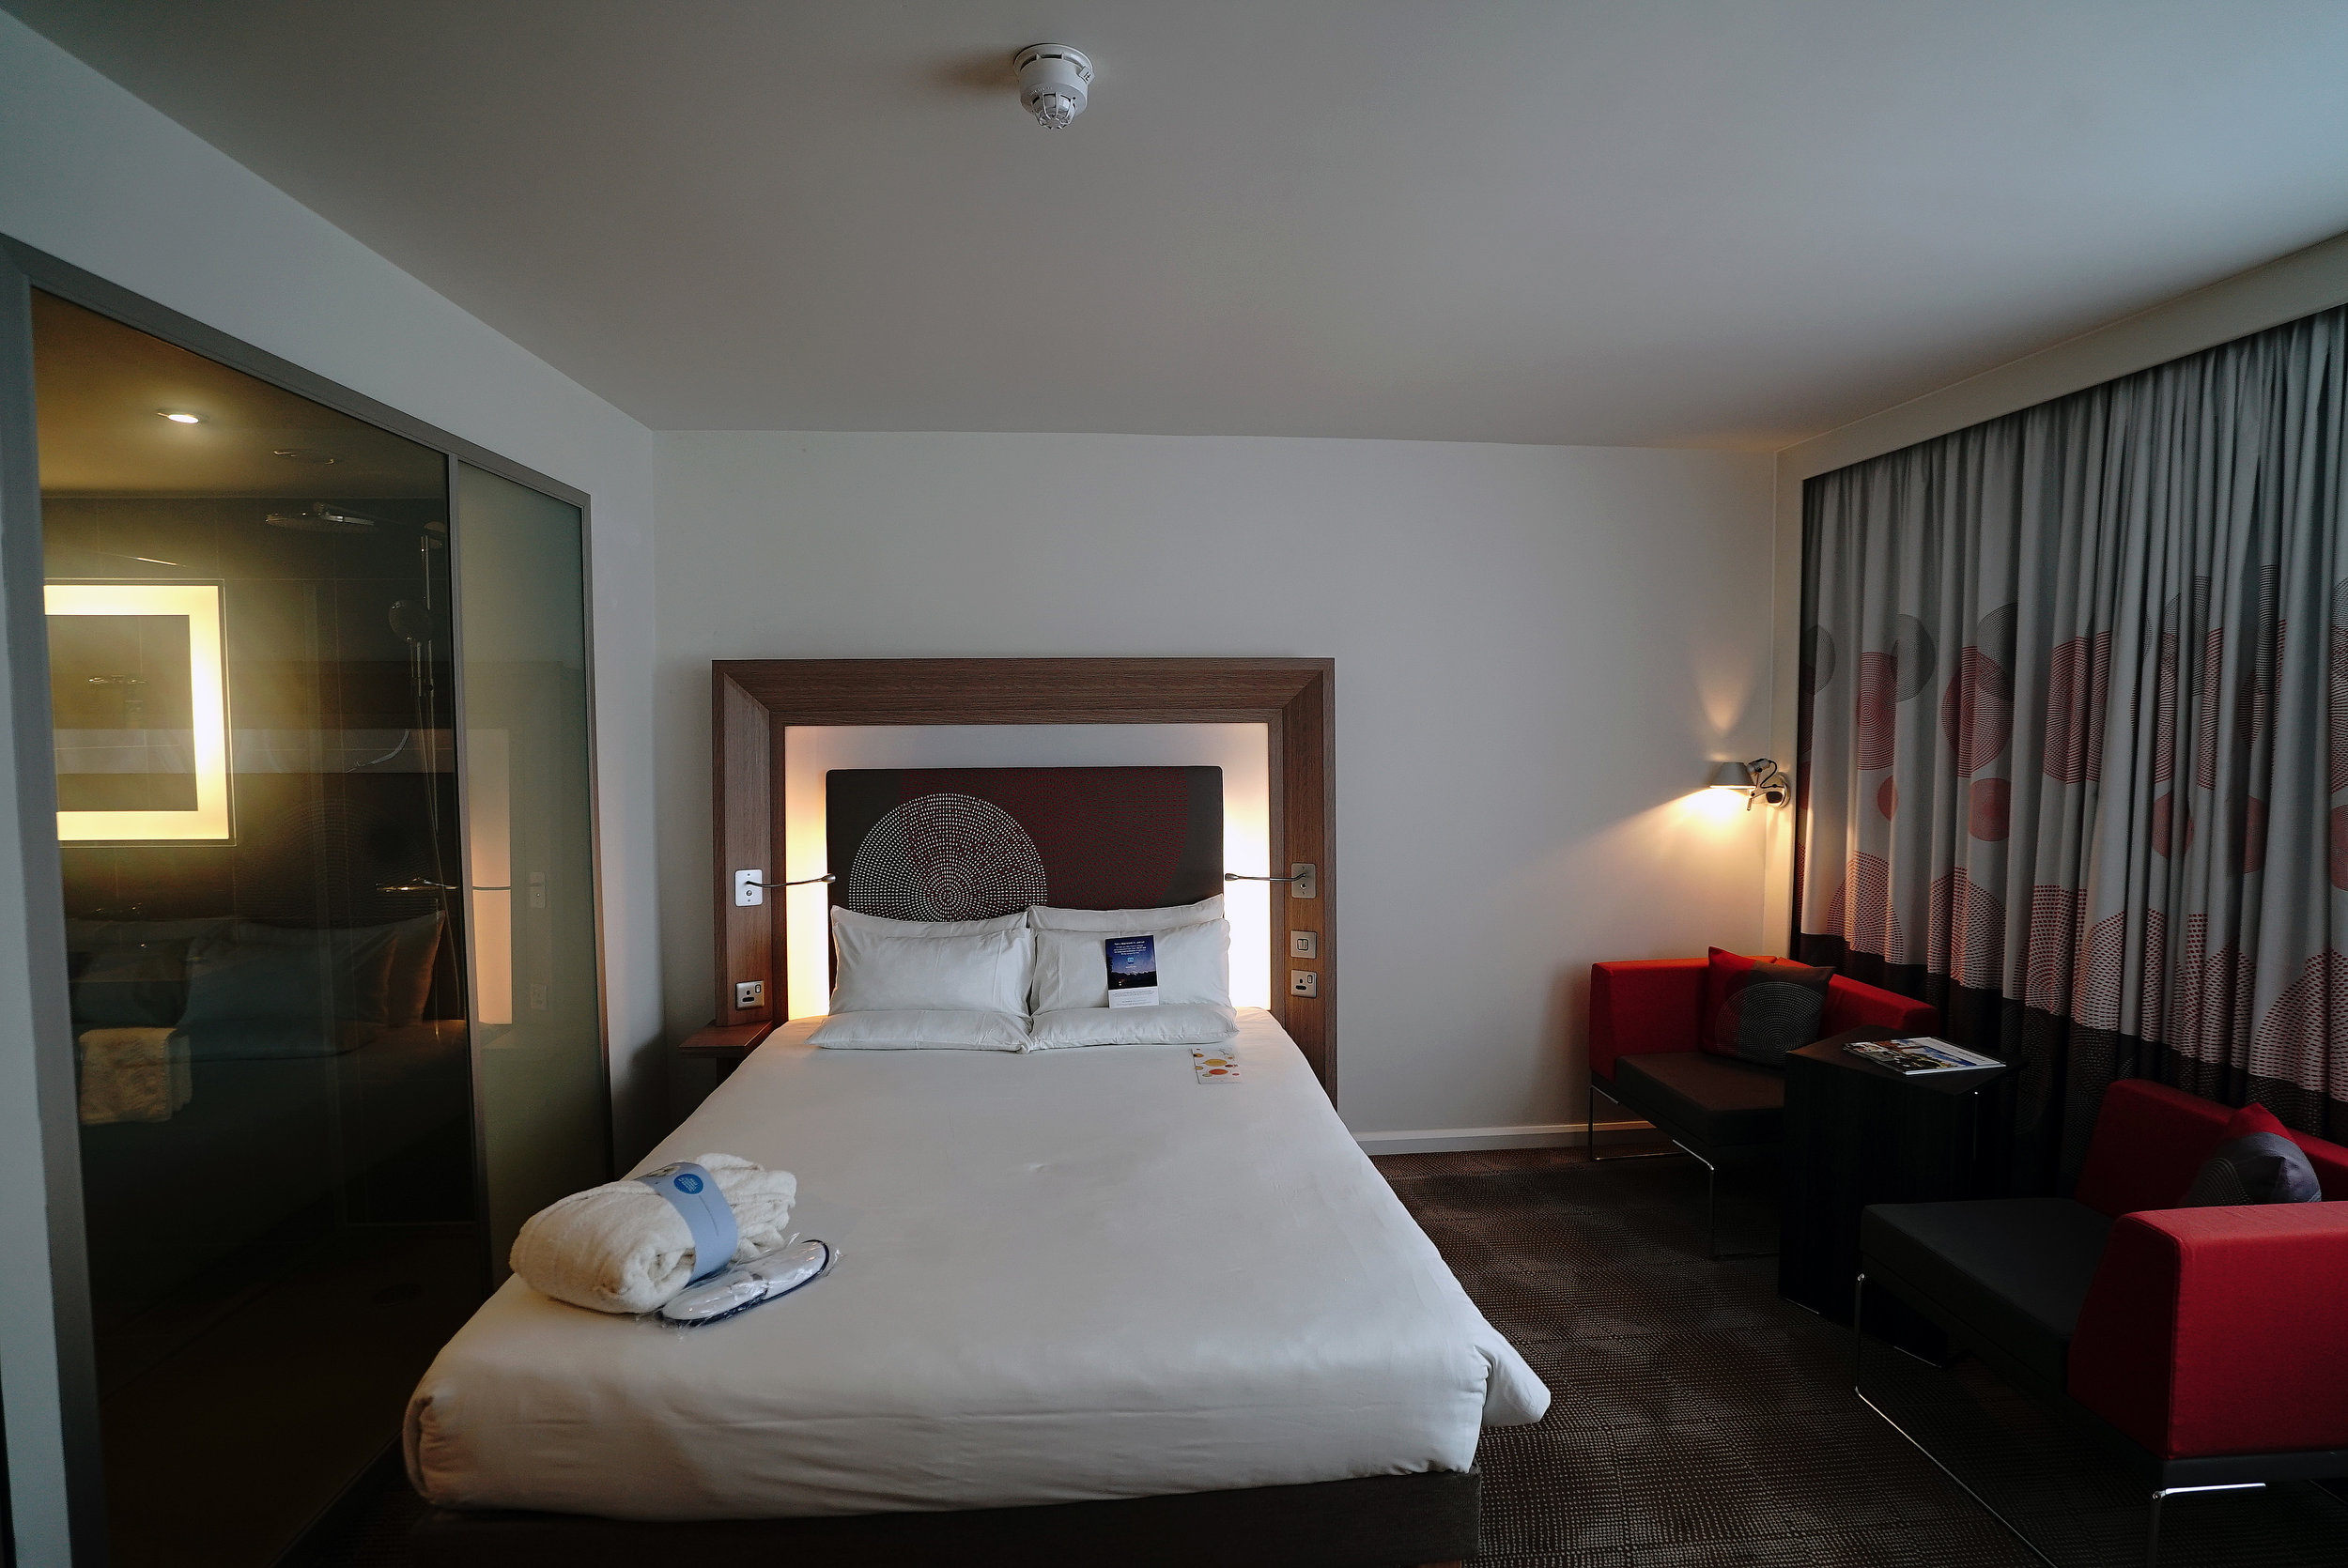 Novotel Brentford Hotel Bedroom 1 L.jpg